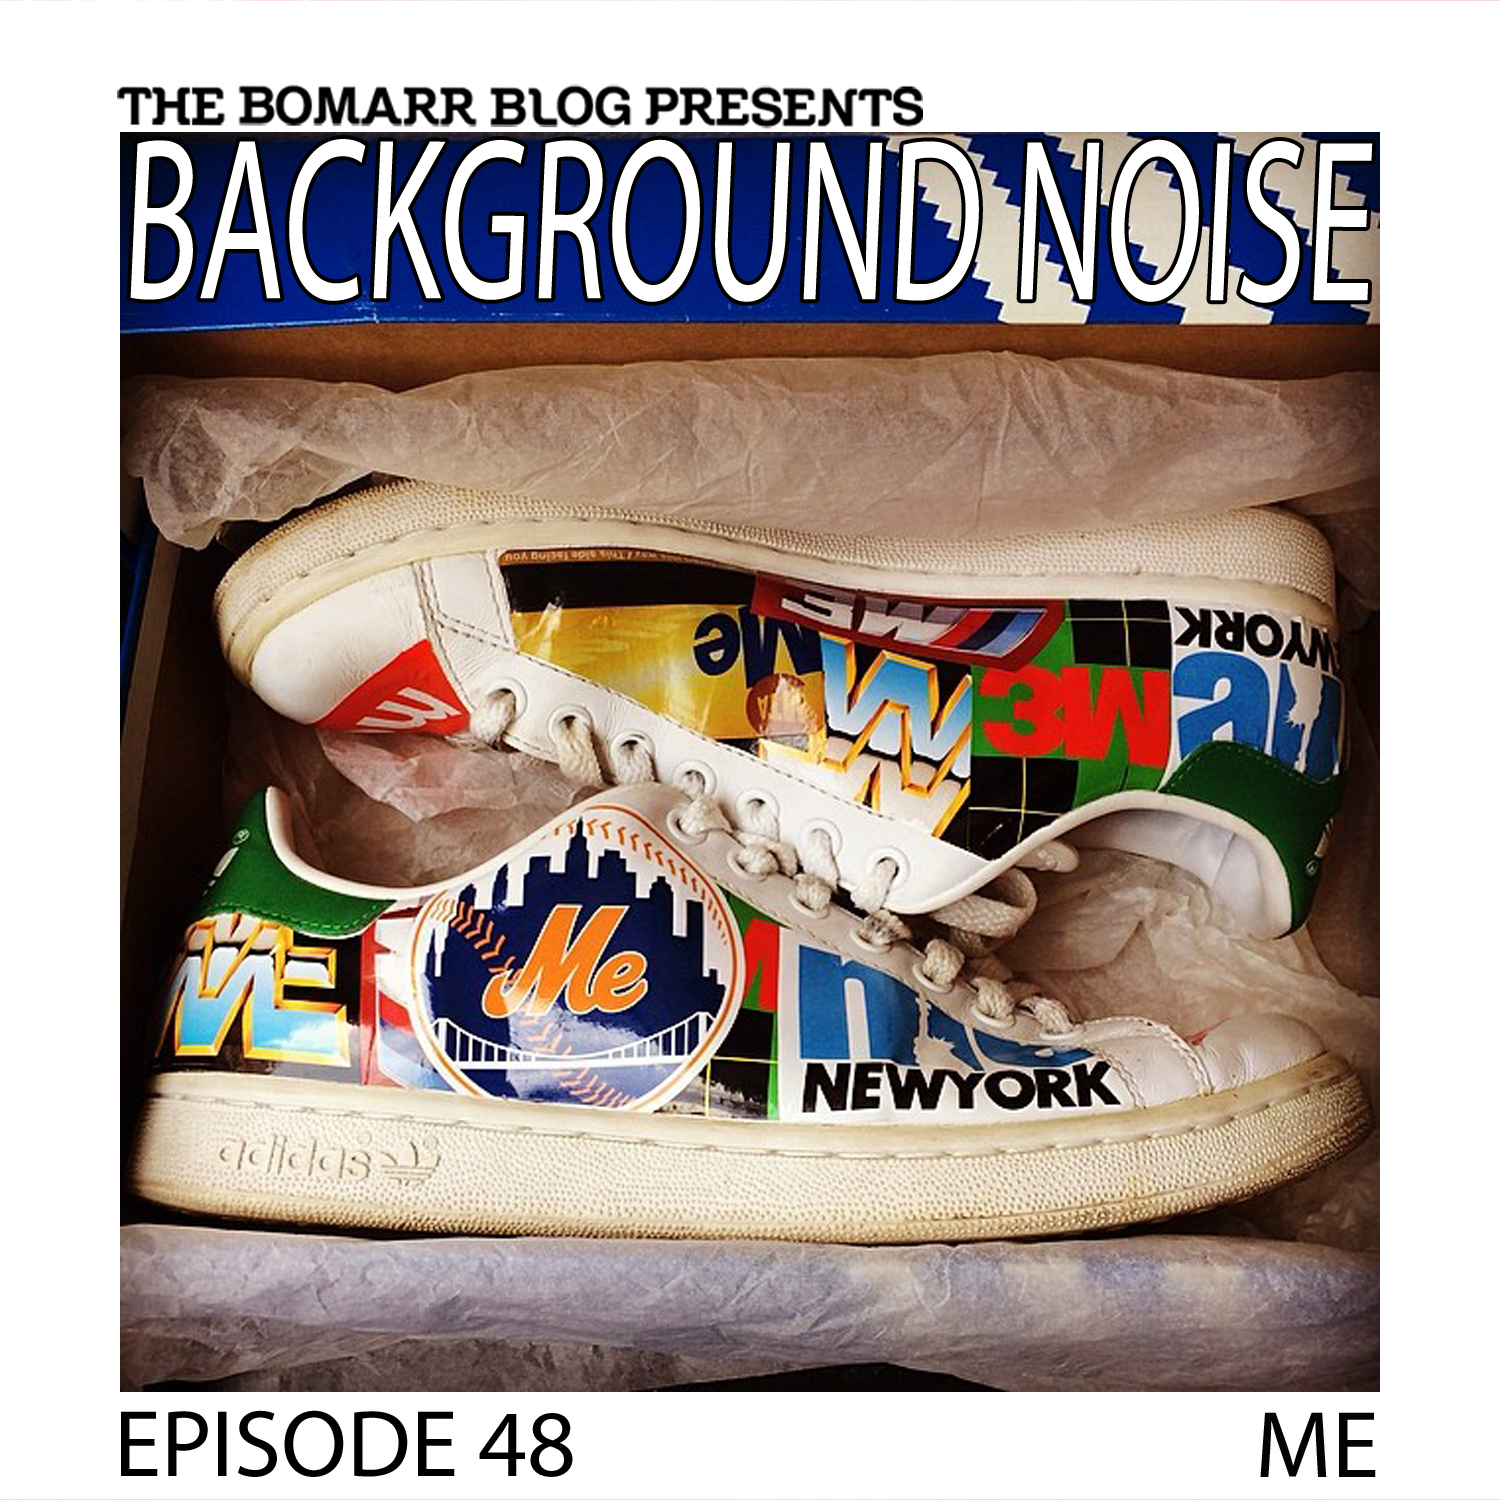 THE BACKGROUND NOISE PODCAST SERIES FOCUSES ON THE MUSIC THAT ARTISTS LISTEN TO WHEN THEY WORK, WHAT MUSIC INSPIRES THEM, OR JUST MUSIC THEY LIKE. THIS WEEK, IN EPISODE 49, THE FOCUS IS ON ARTIST ME